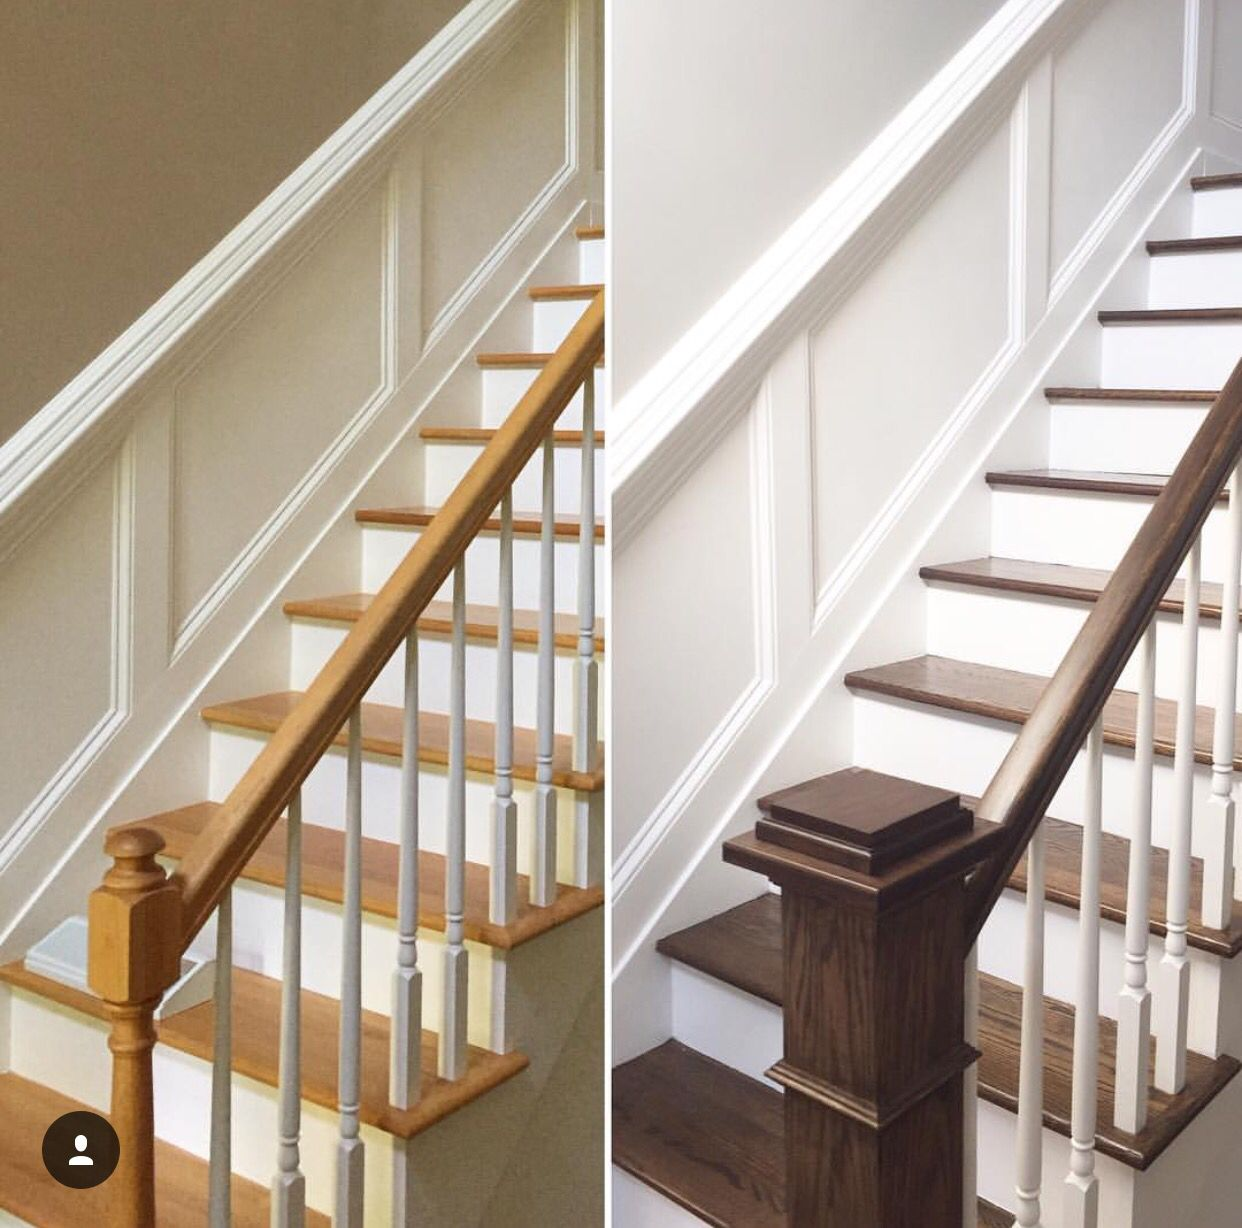 4 Diy Decorating Ideas For A Staircase: Staircase Remodel, Basement